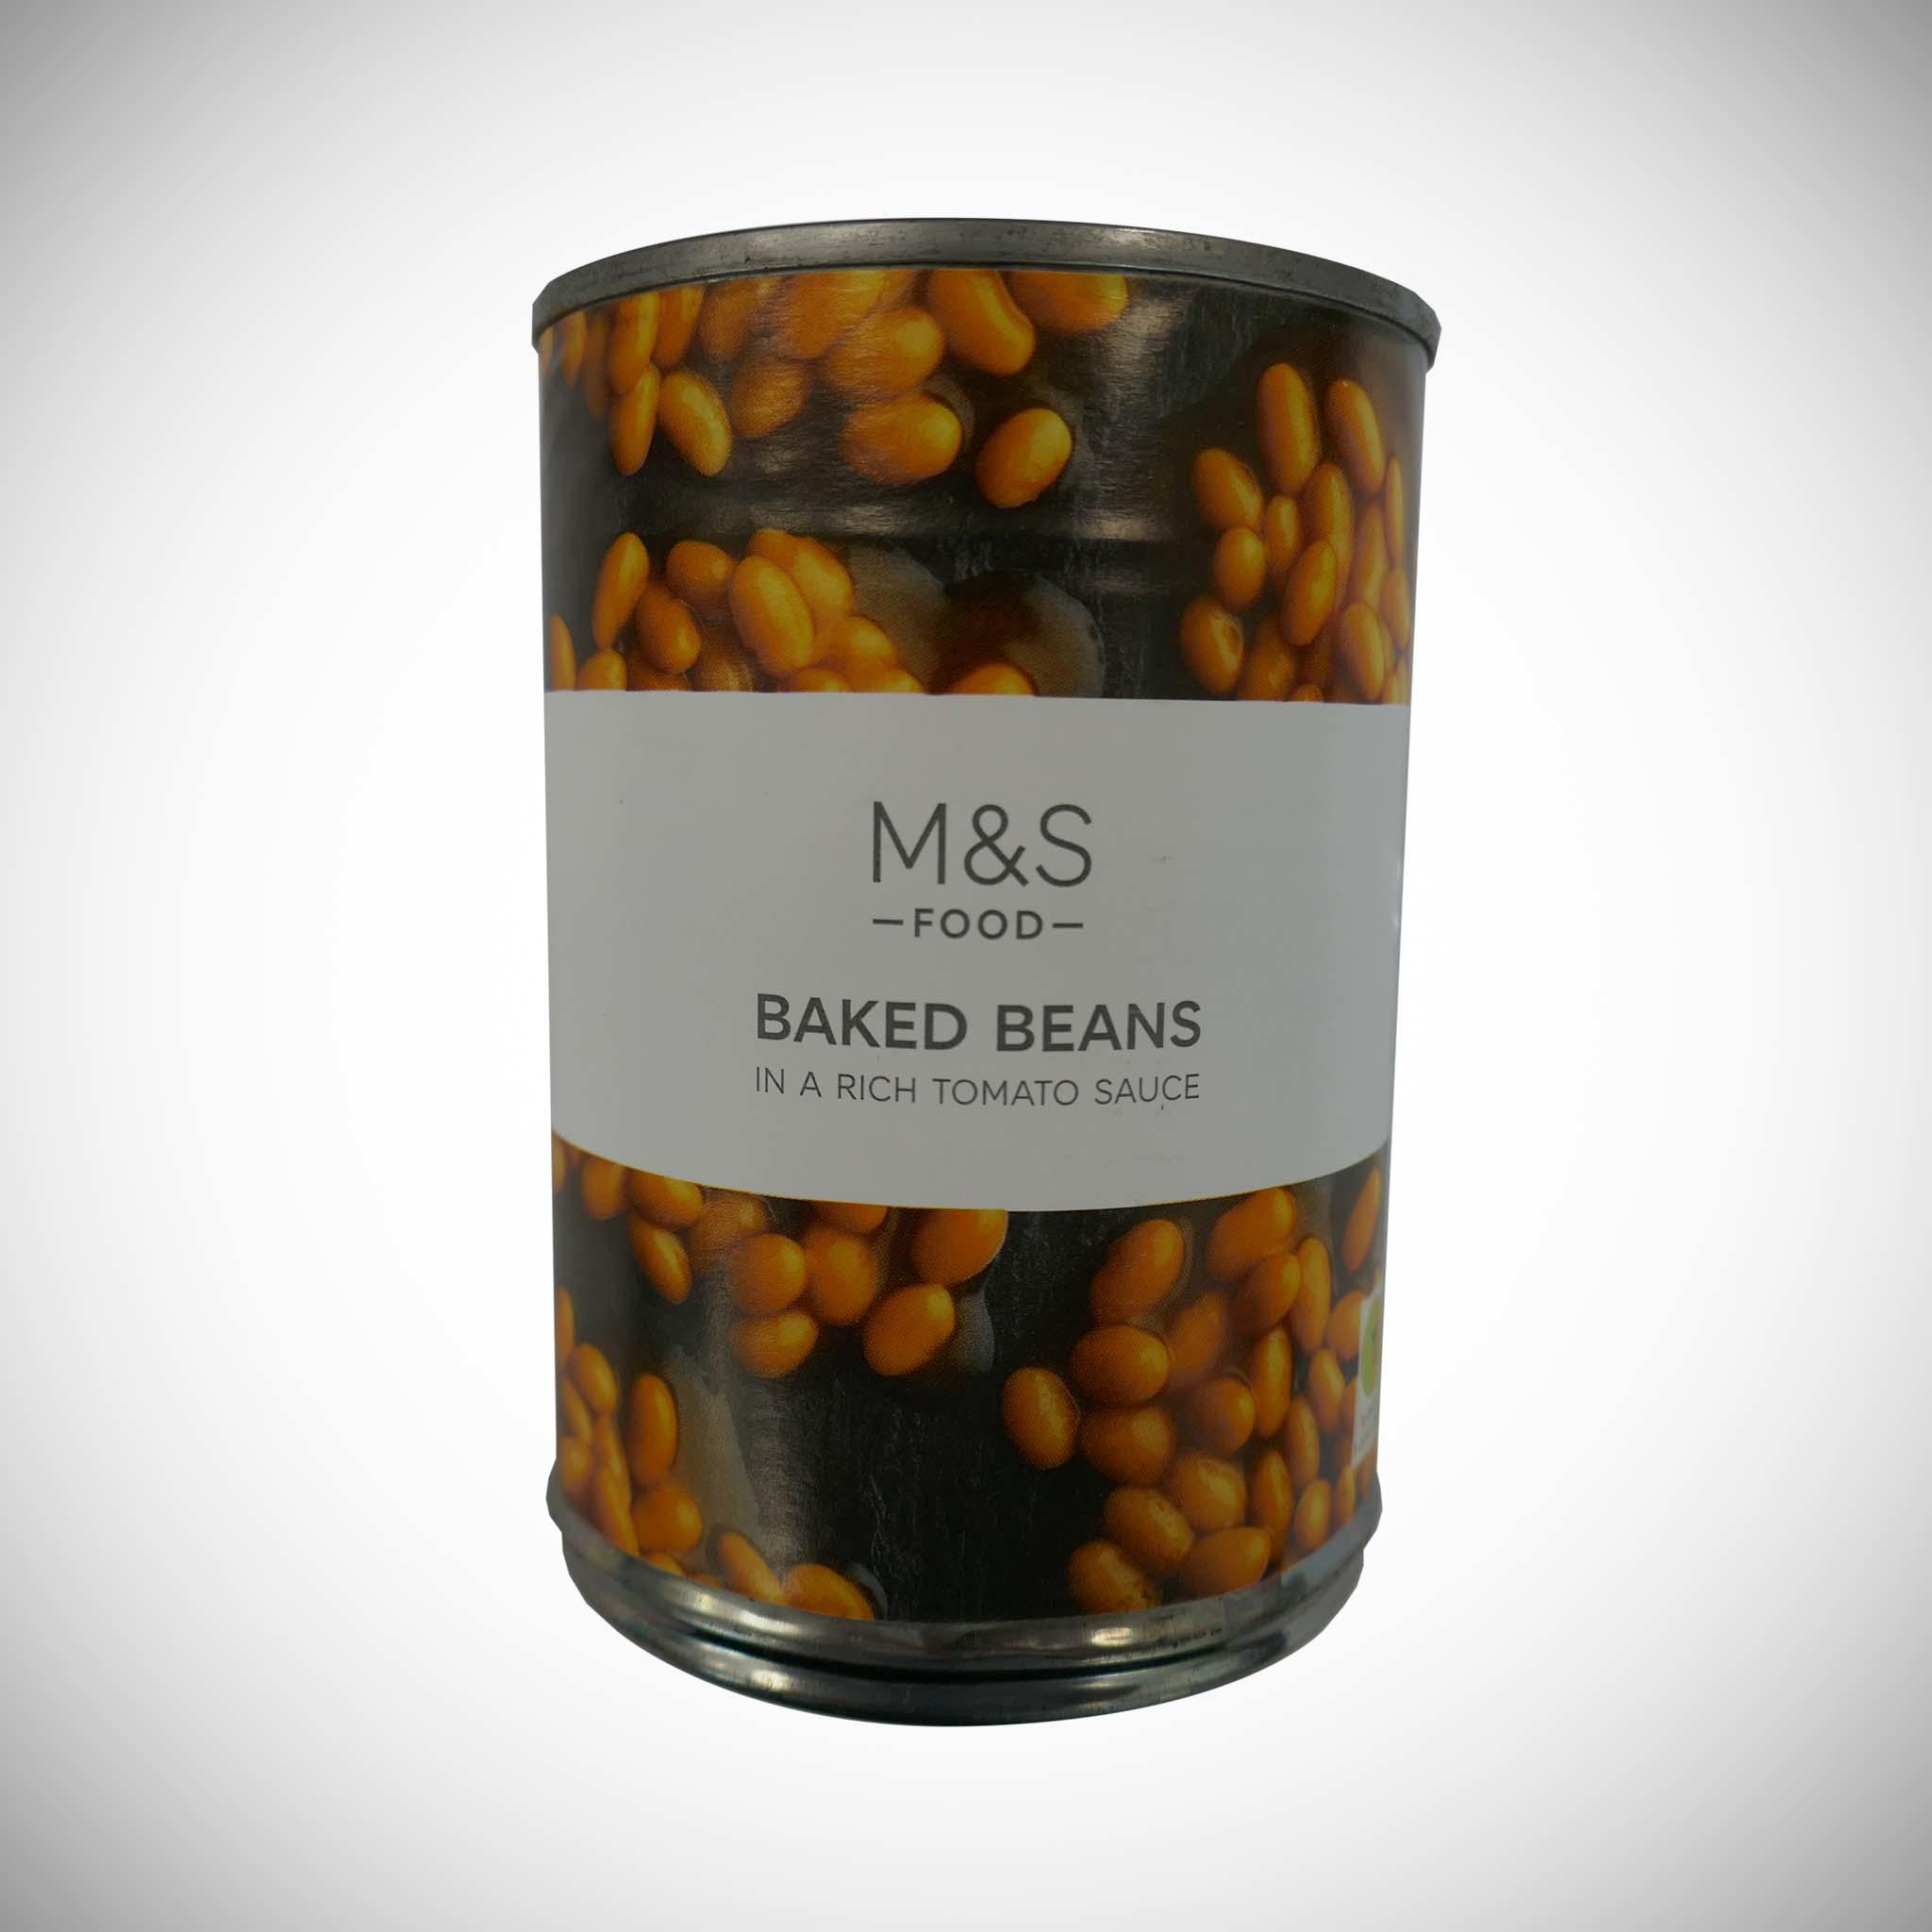 M&S Baked Beans